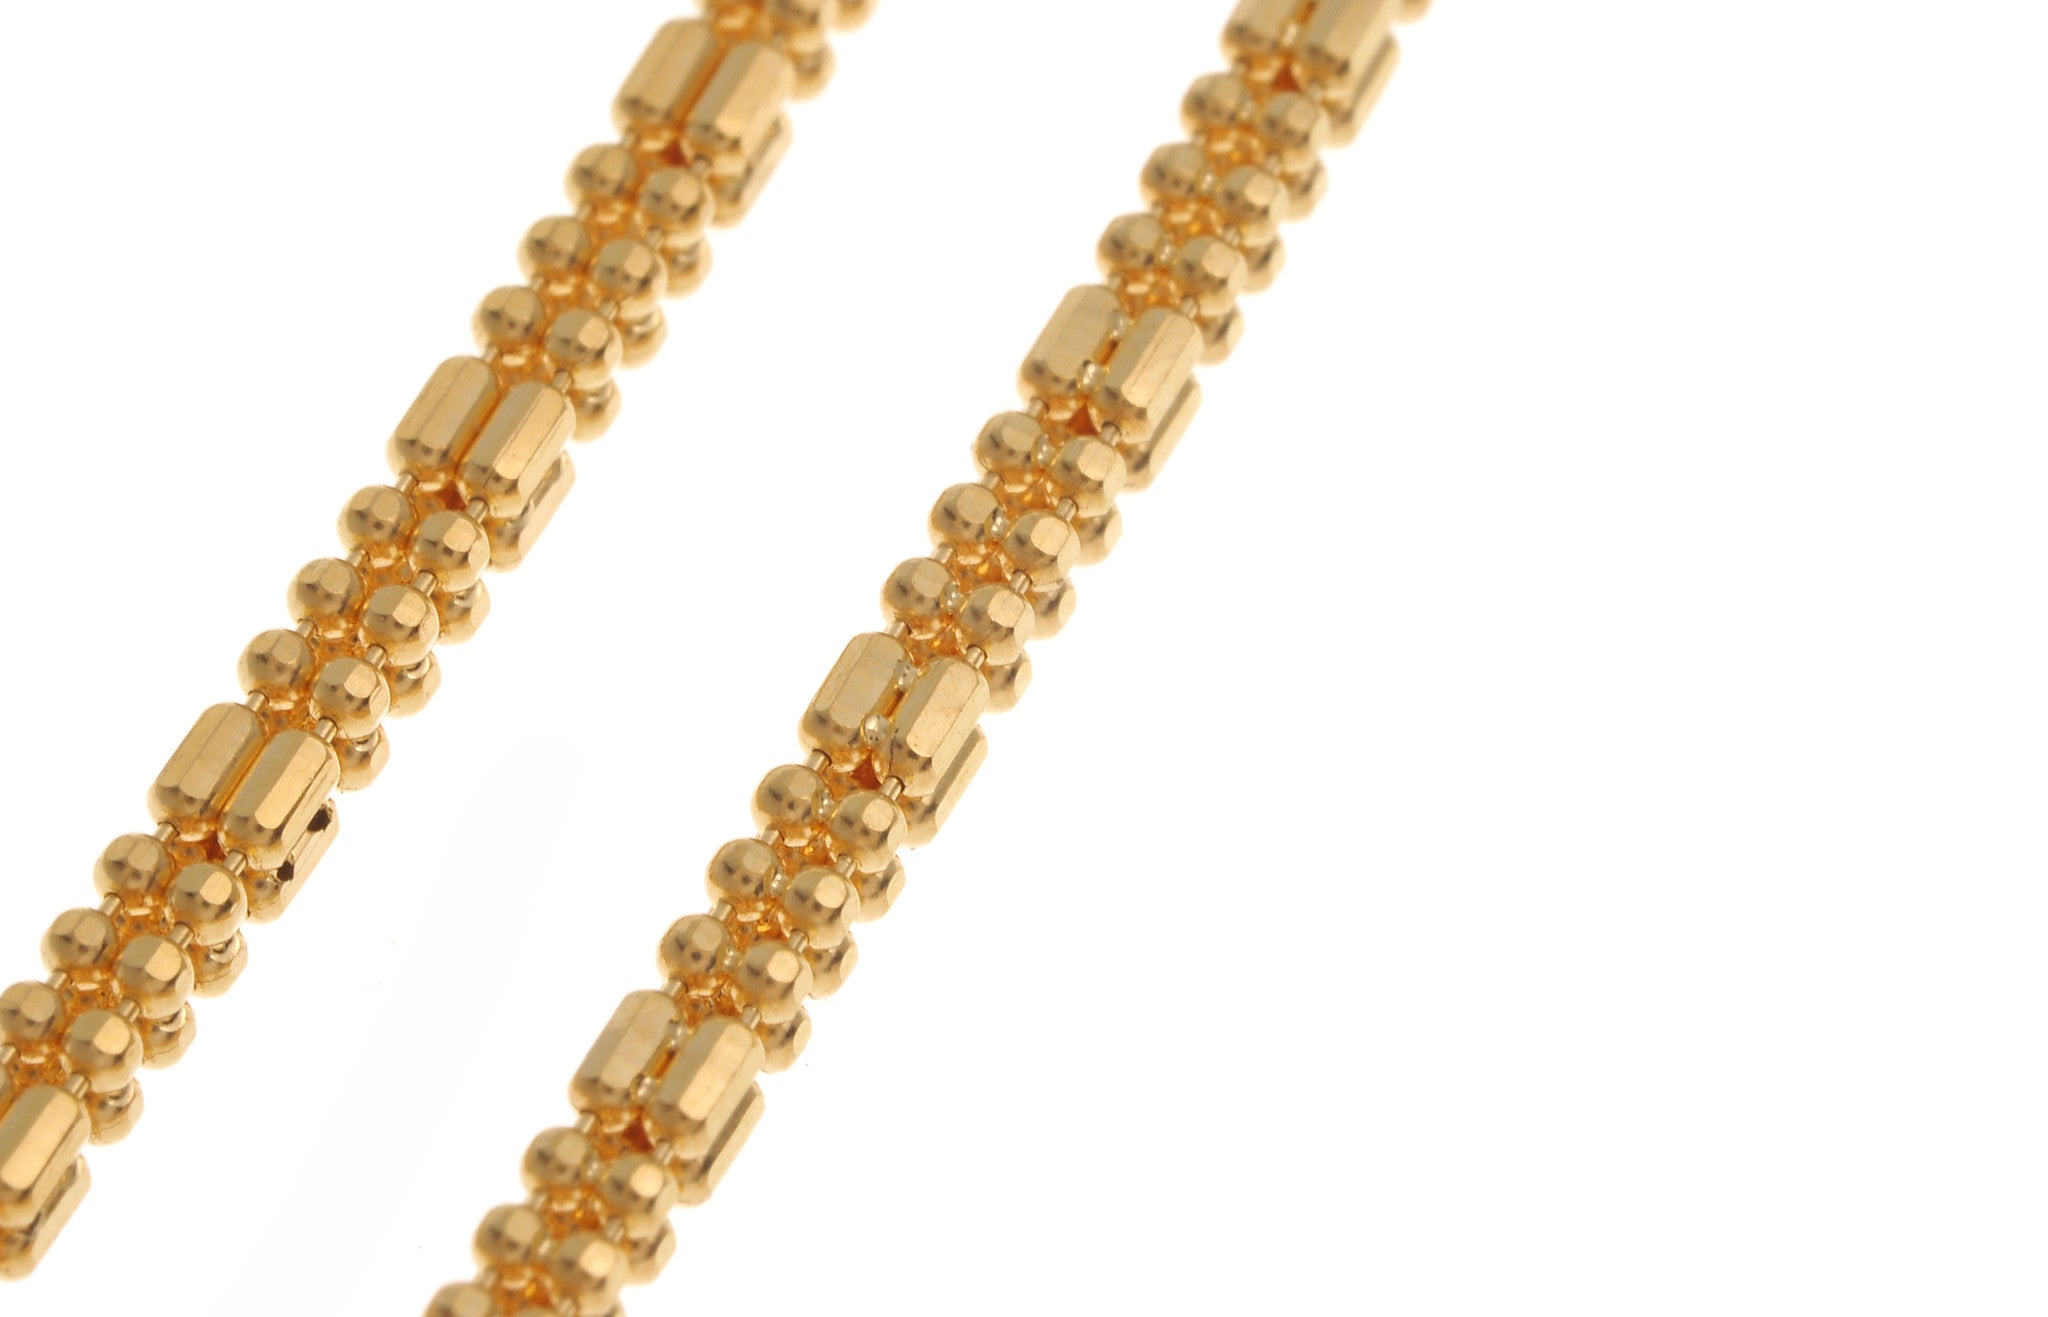 22ct Yellow Gold Chain with a lobster clasp (C-5217)